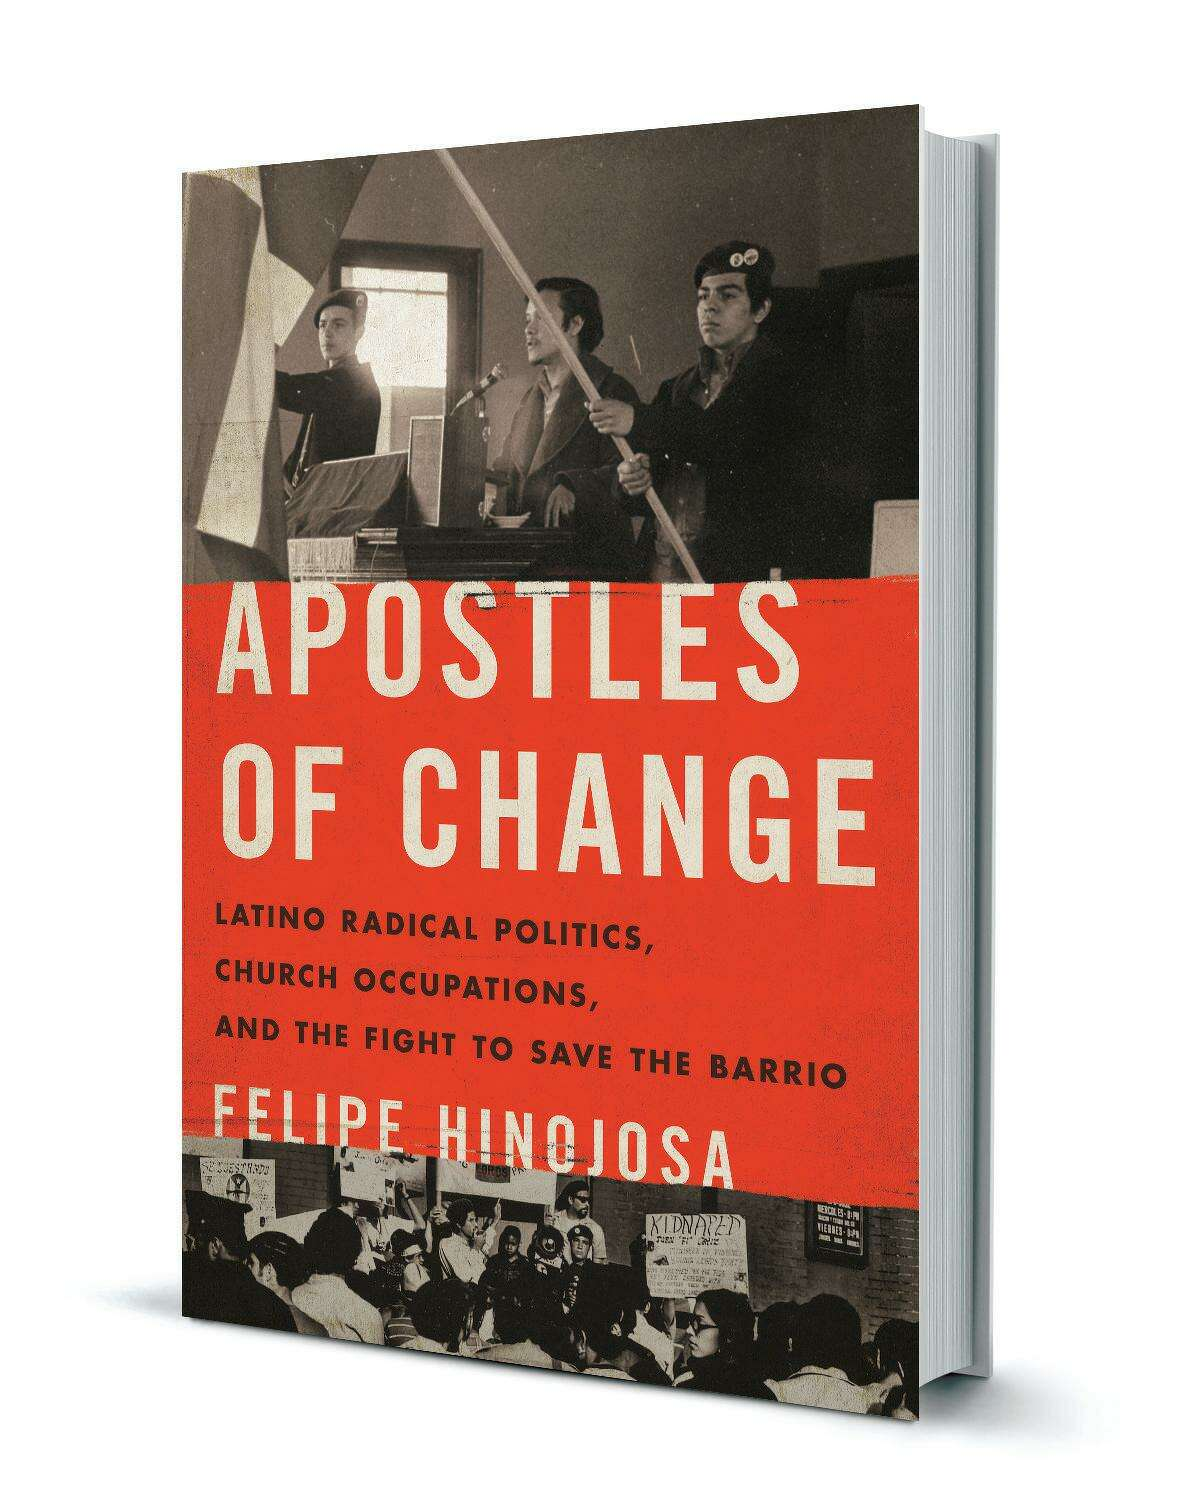 Felipe Hinojosa is an associate professor of history at Texas A&M University and the author of the new book, Apostles of Change: Latino Radical Politics, Church Occupations, and the Fight to Save the Barrio.